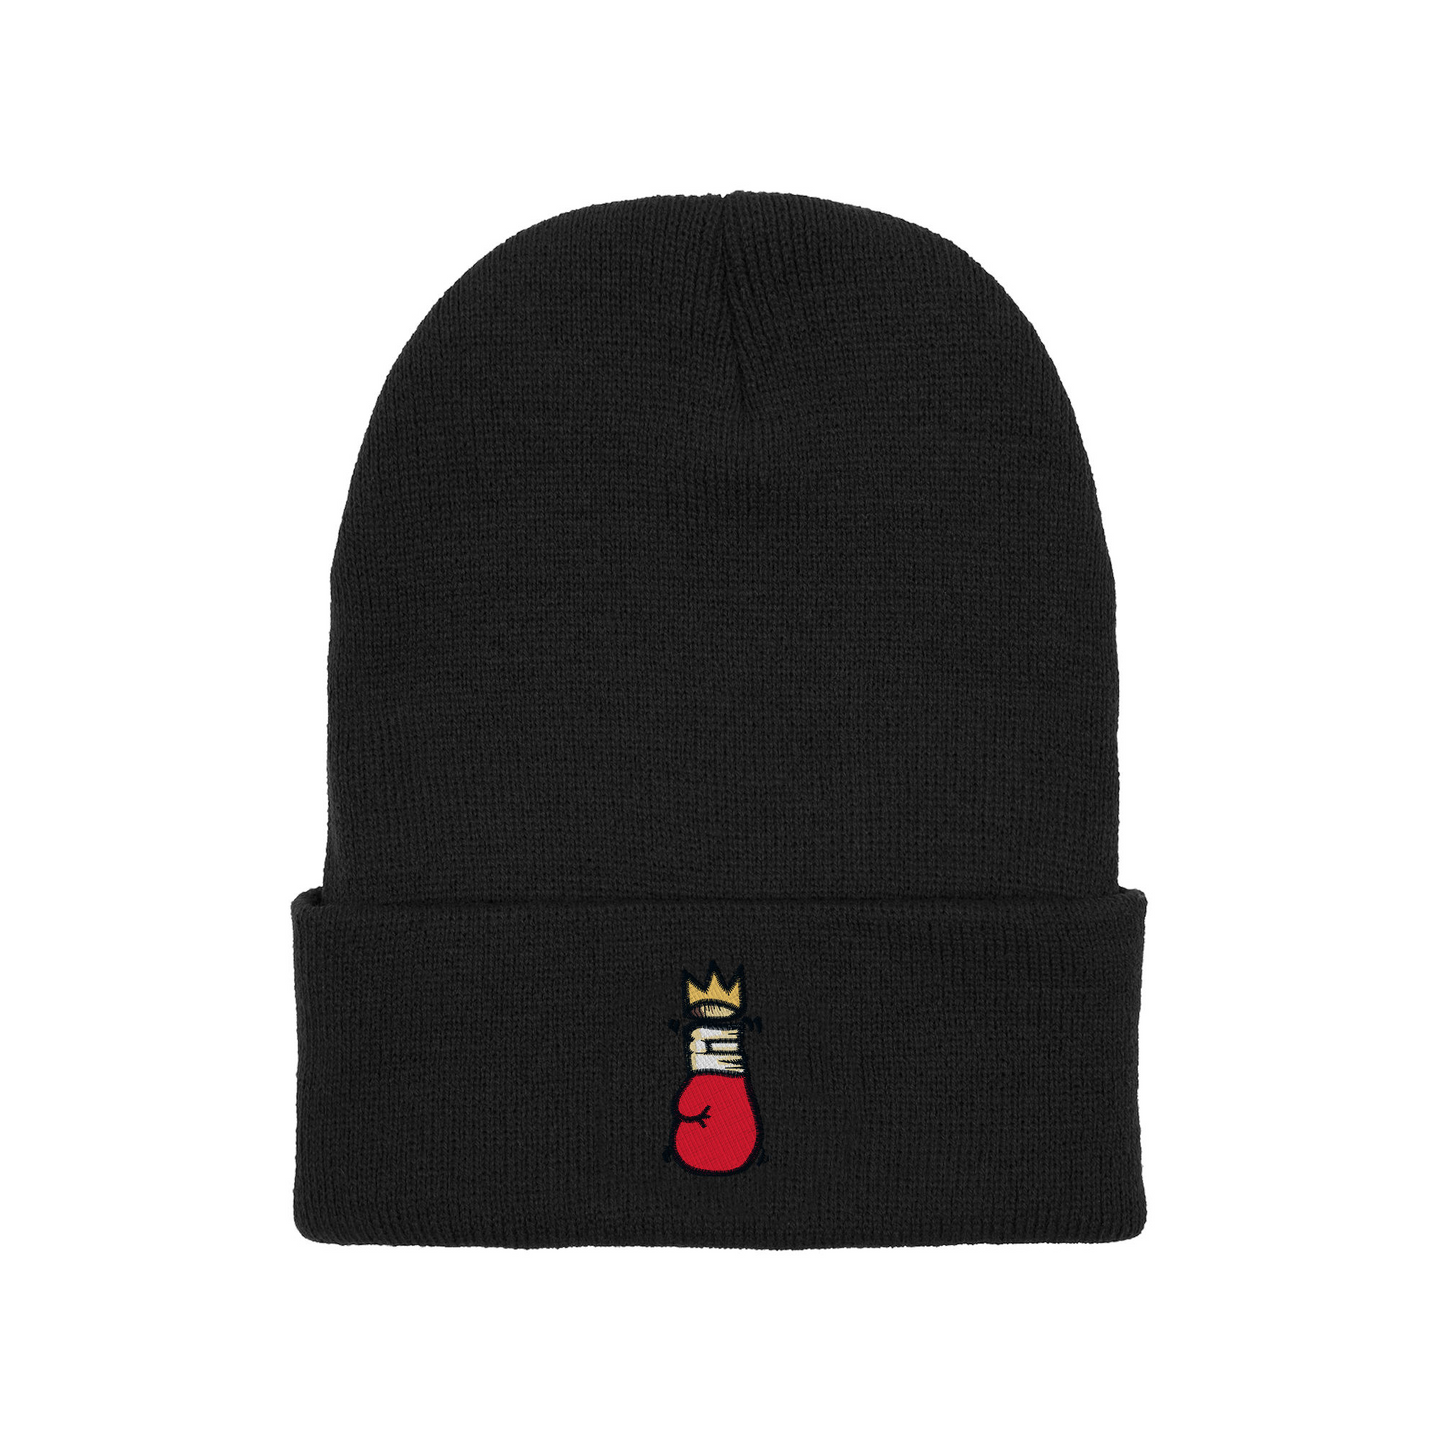 JC Rivera x Threadless Beanie